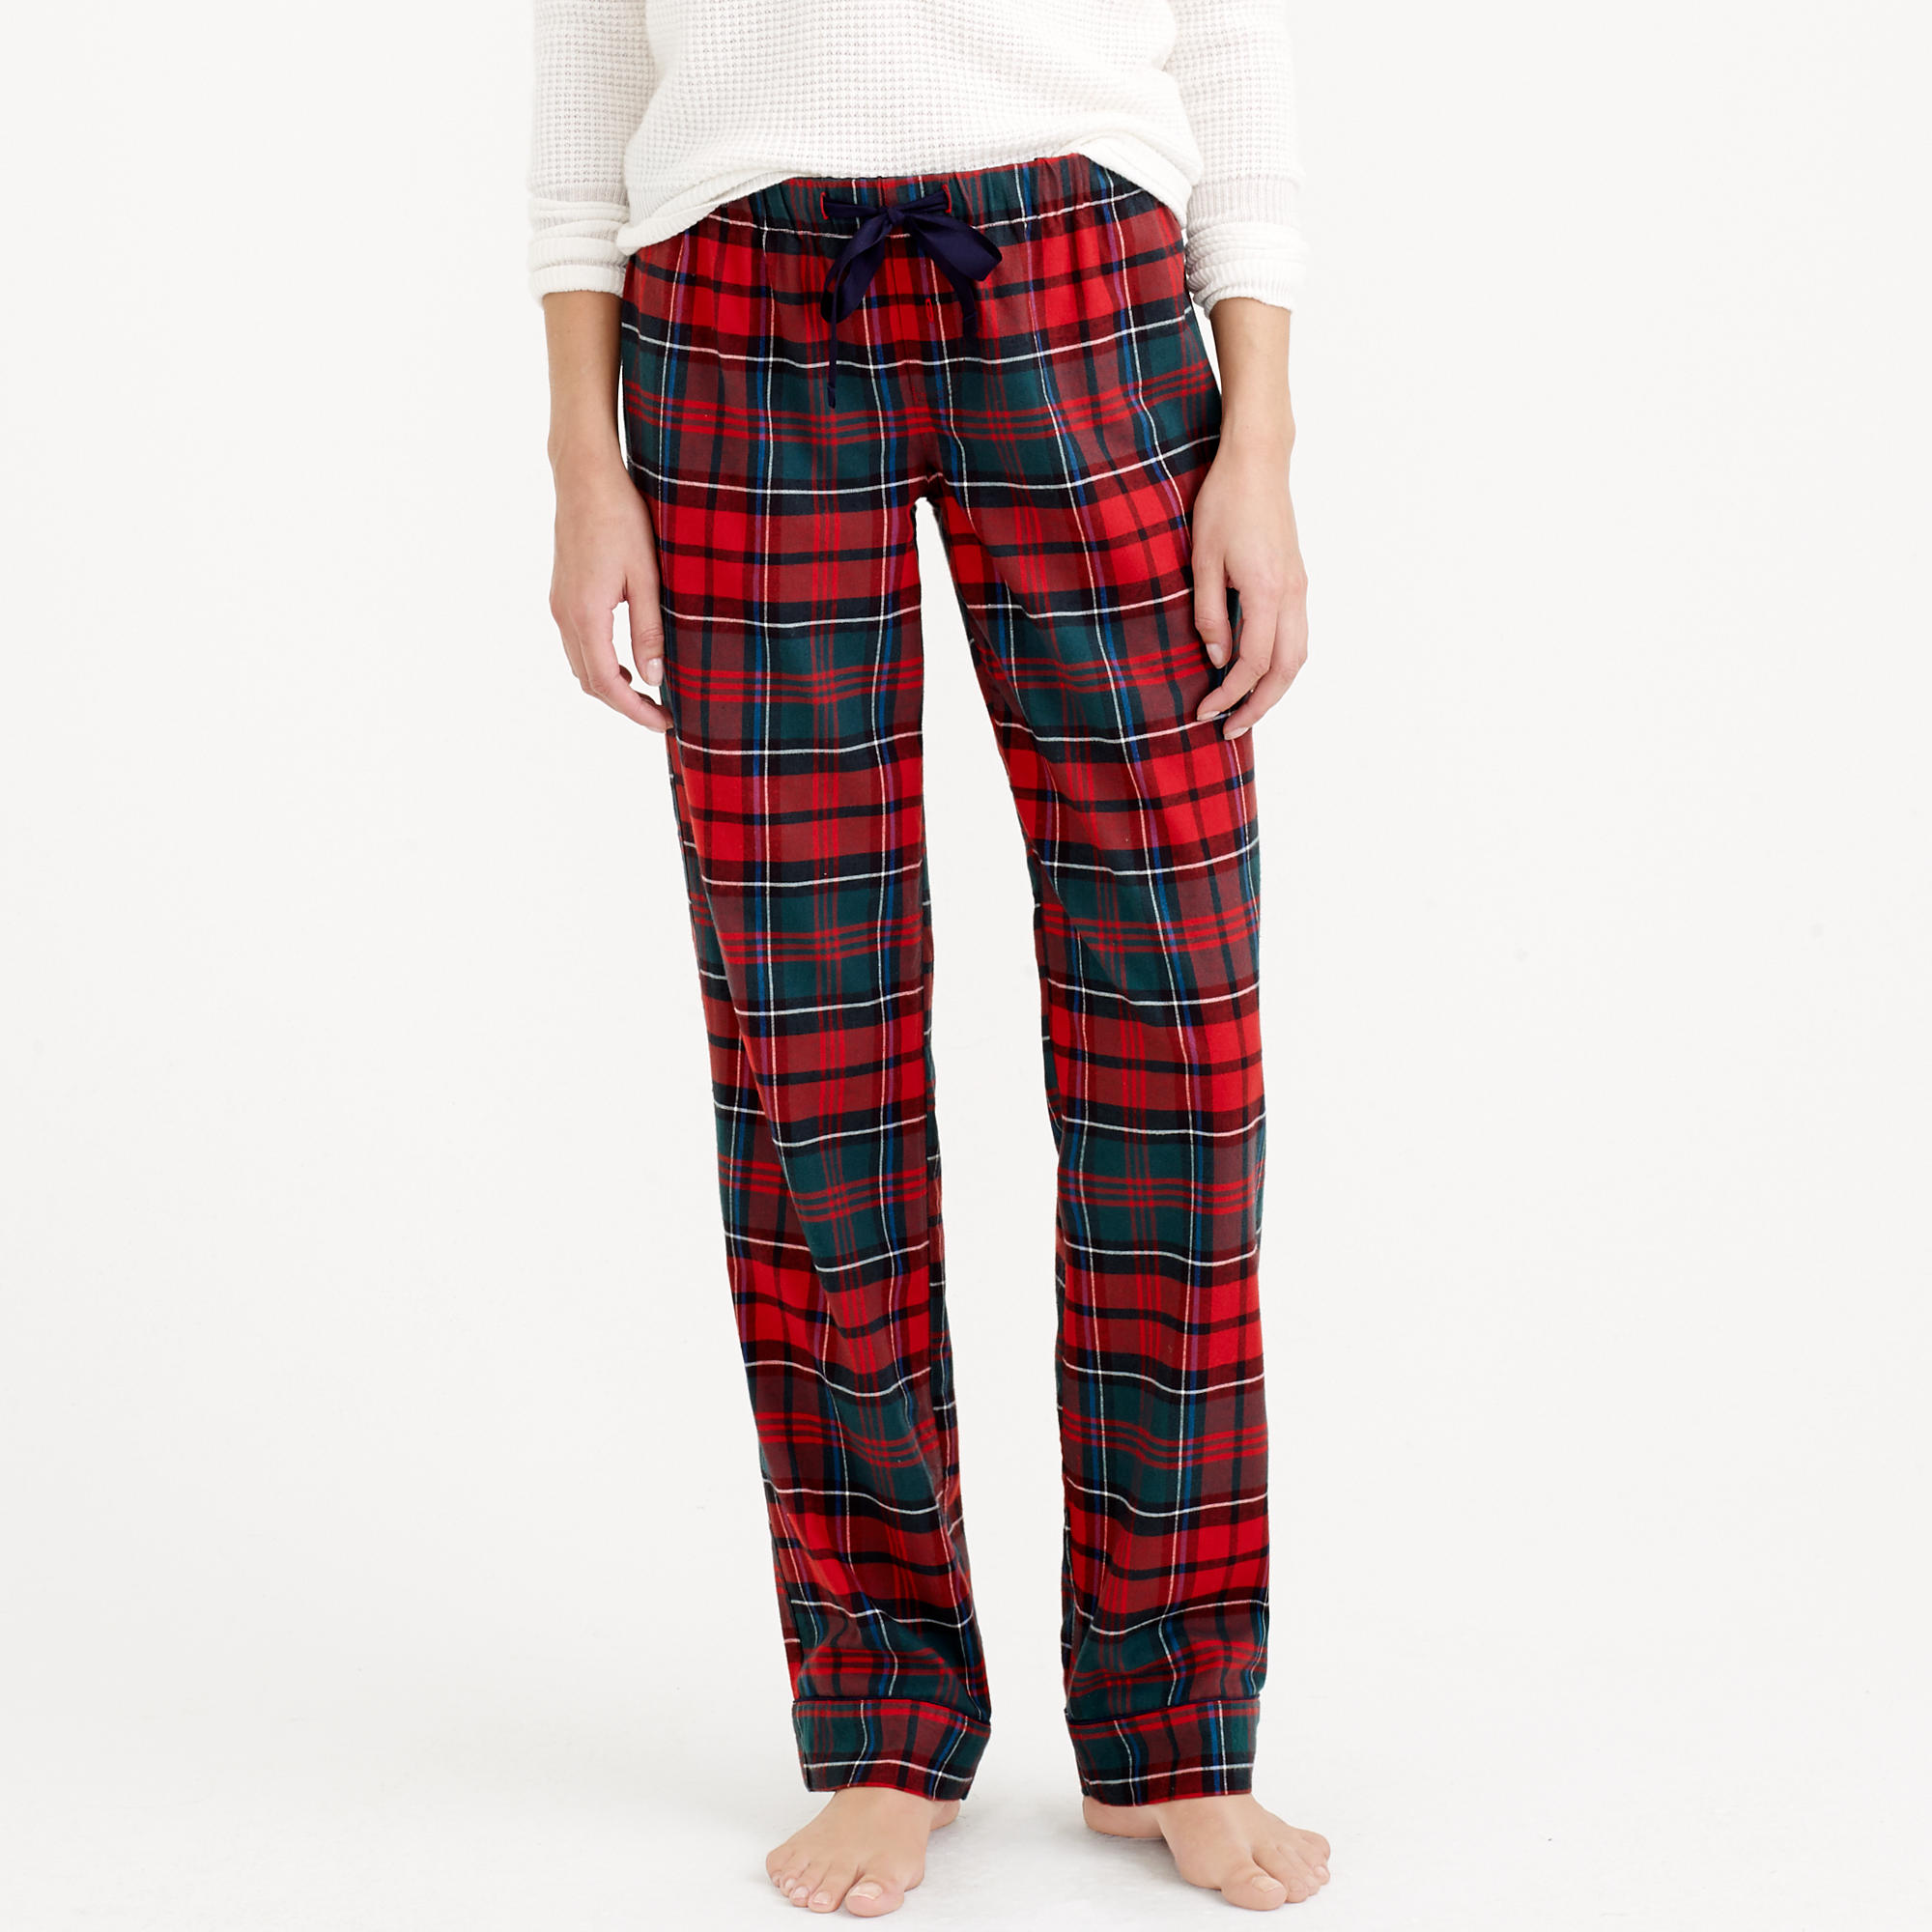 Pajama pant in plaid flannel : Women pajamas | J.Crew